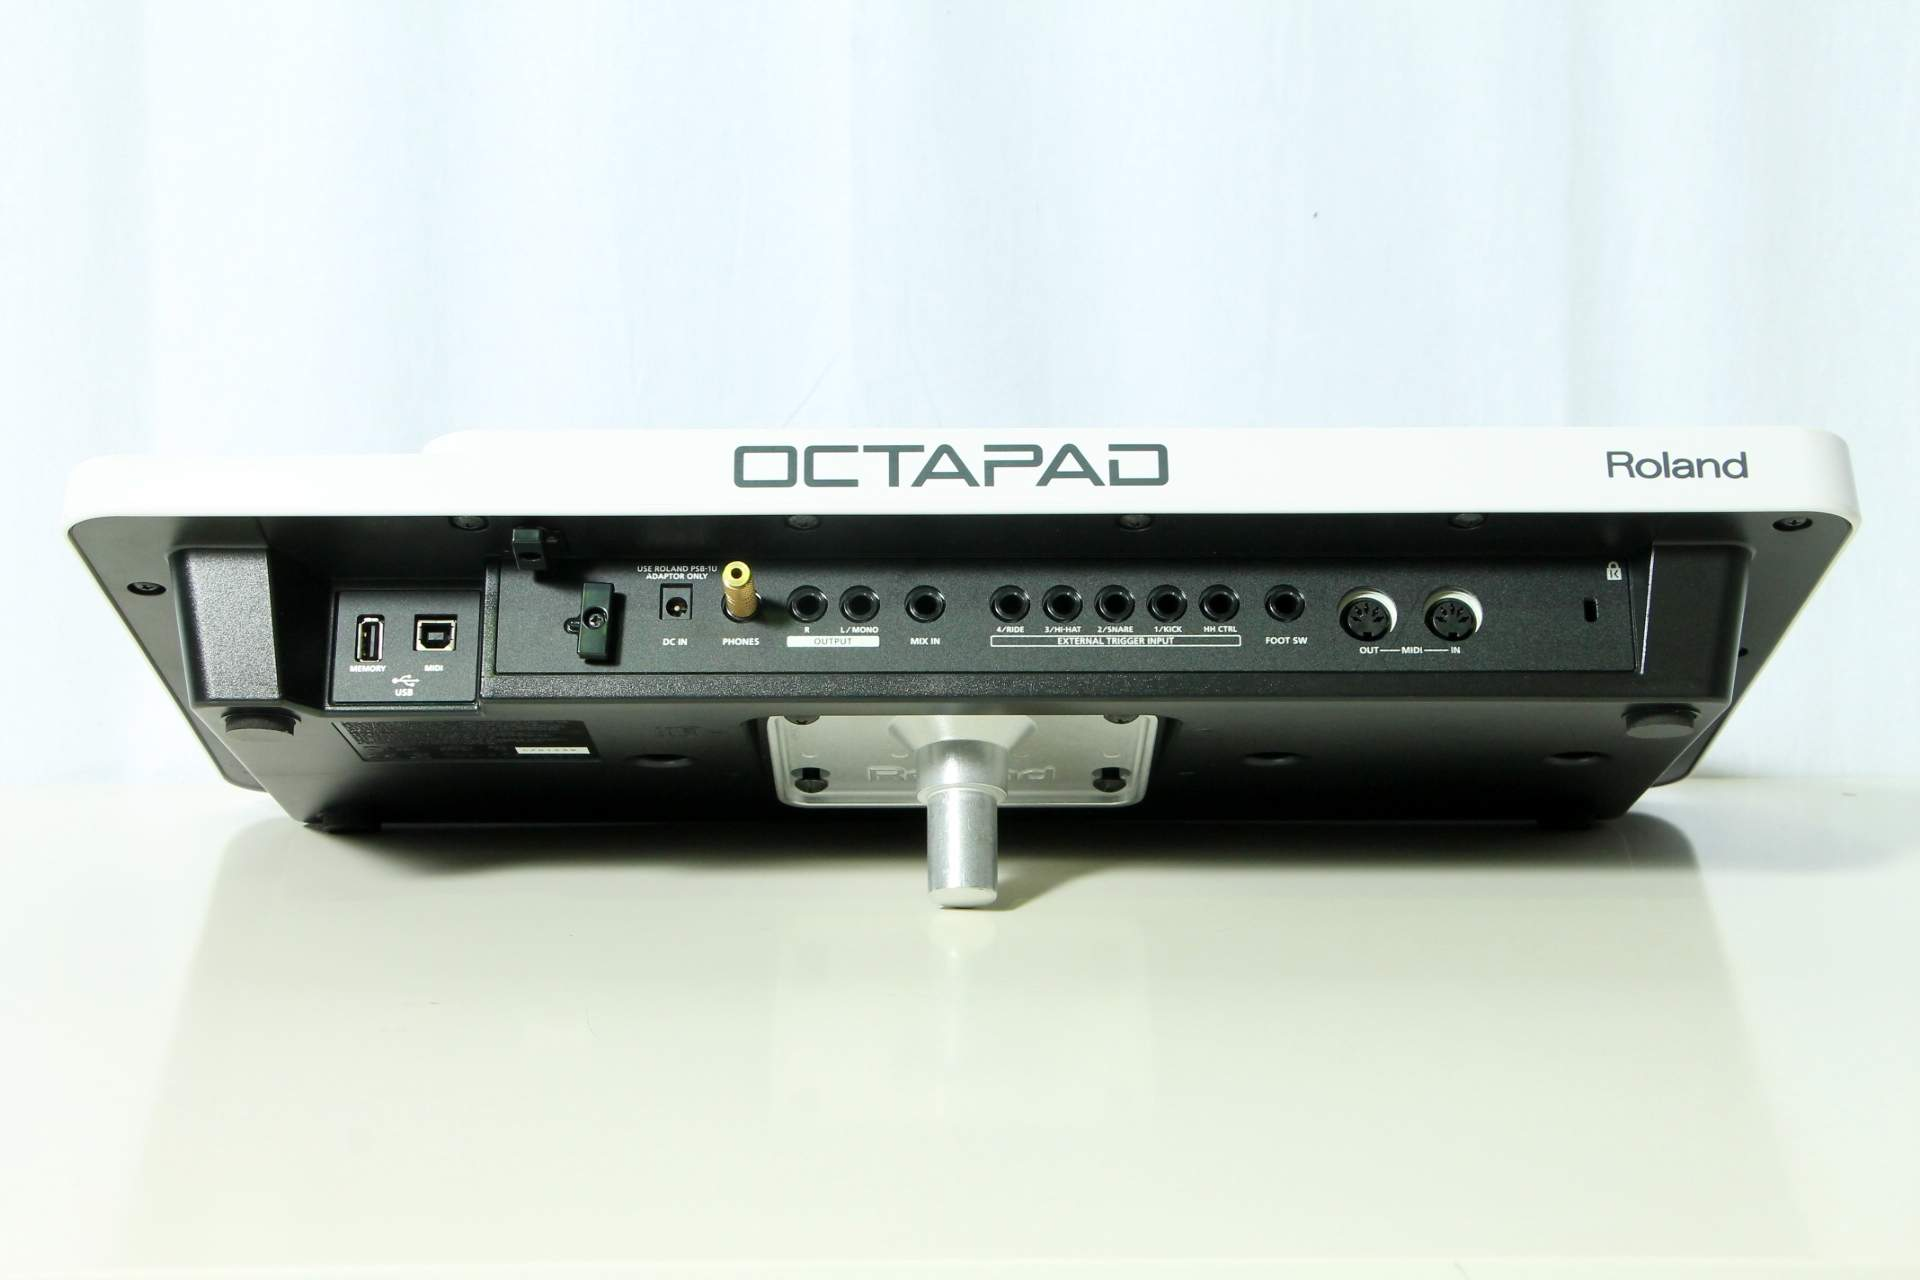 roland octapad spd30 rent from 45 month musicorp australia. Black Bedroom Furniture Sets. Home Design Ideas